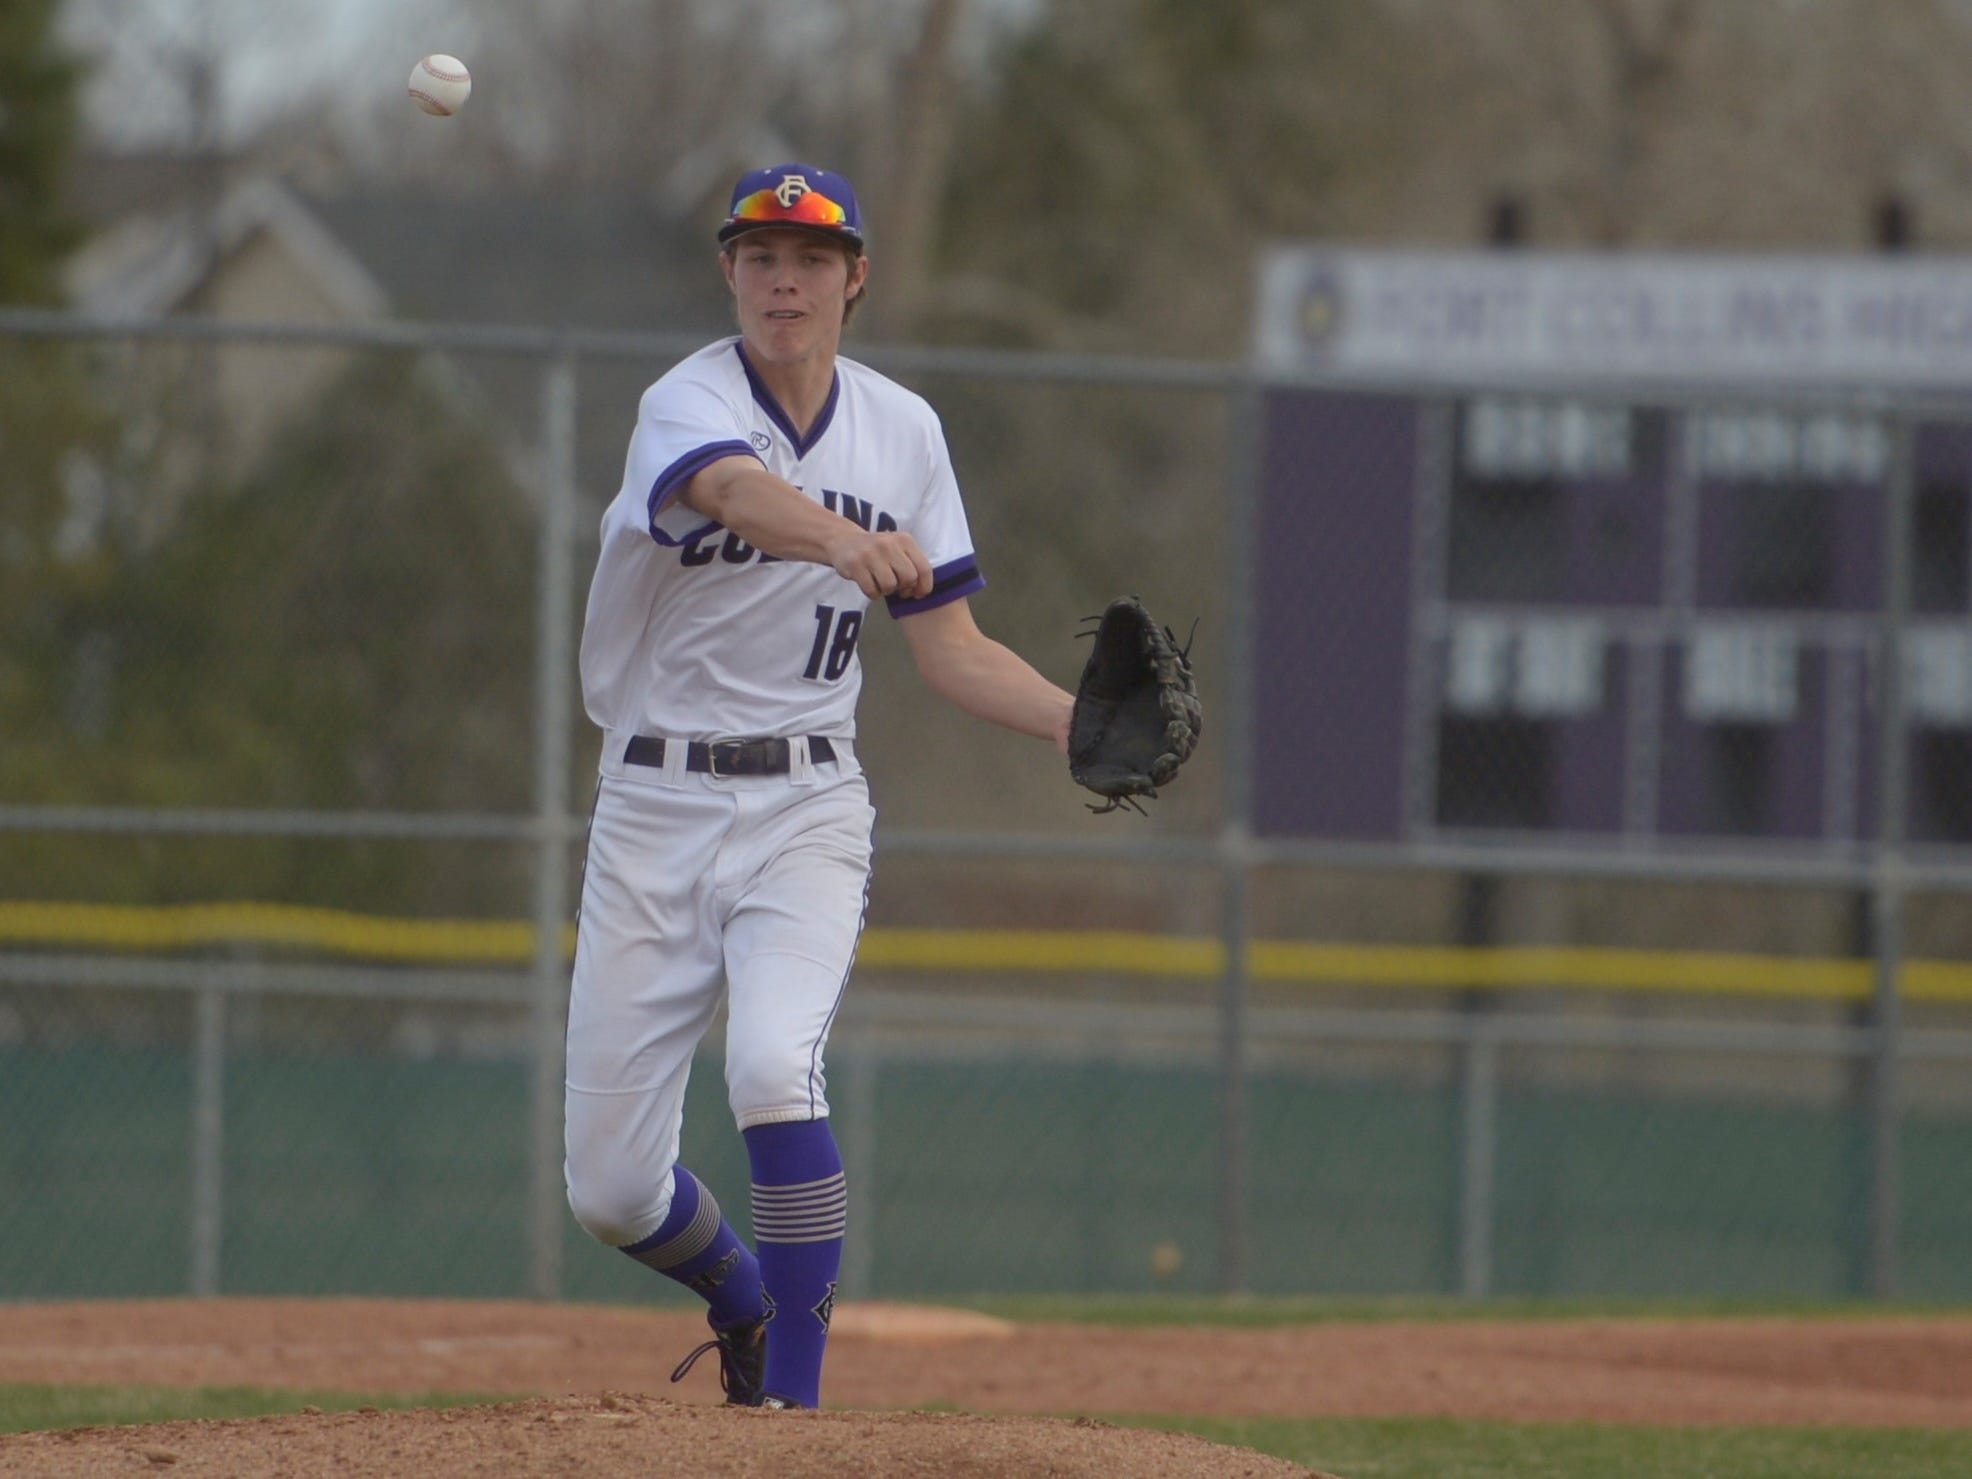 Fort Collins High School baseball third baseman Hayden Iverson throws to first during a game against Denver South on Monday, April 8, 2019. The Lambkins won 13-3 to move to 10-0 on the season.